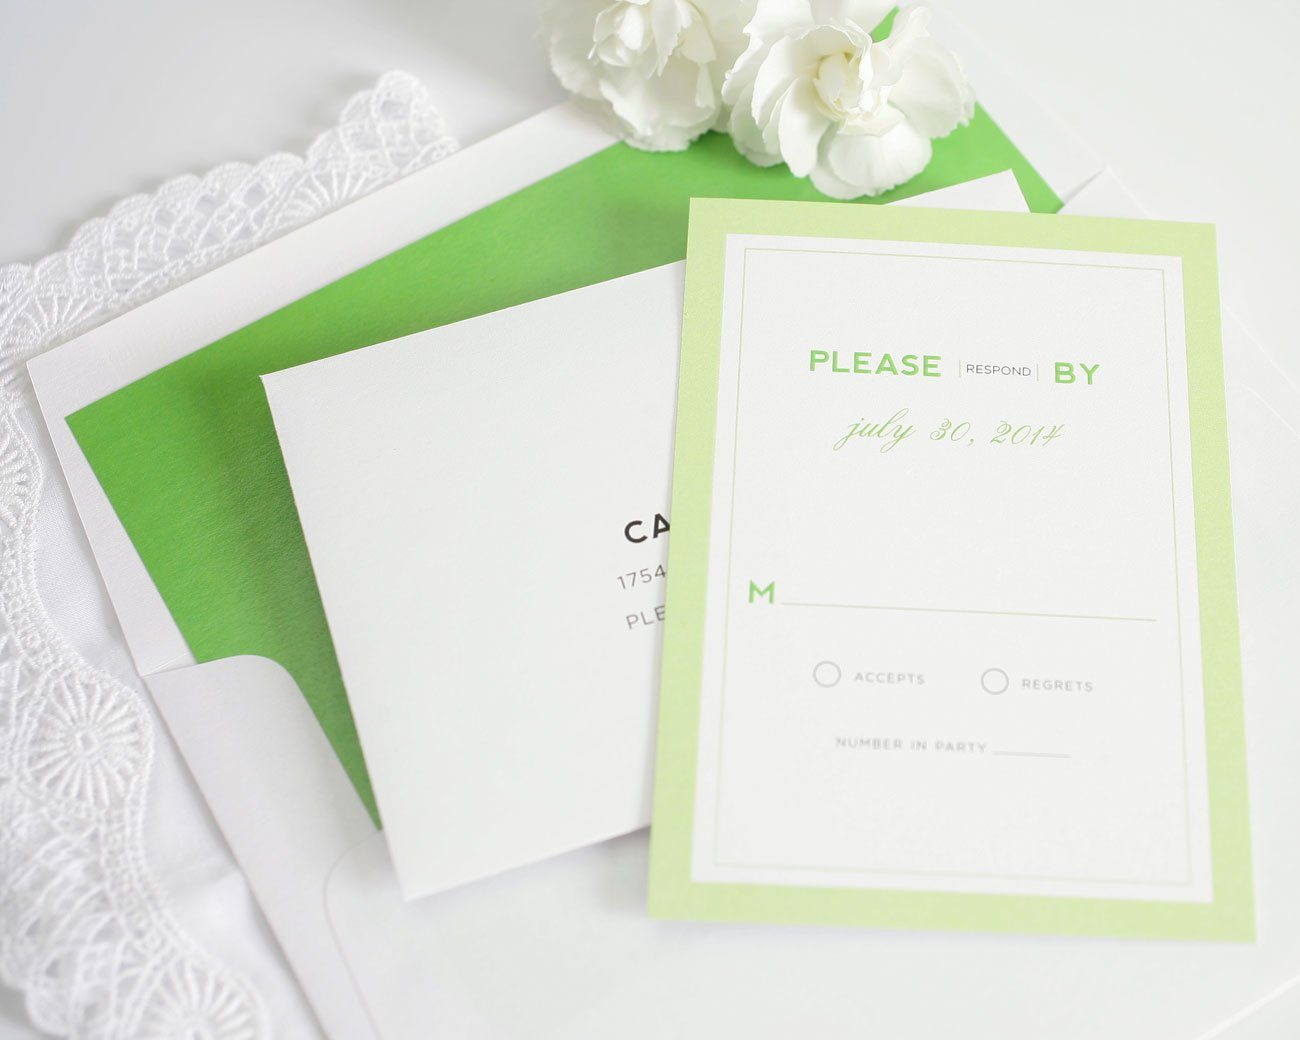 Modern wedding invitations in bright green